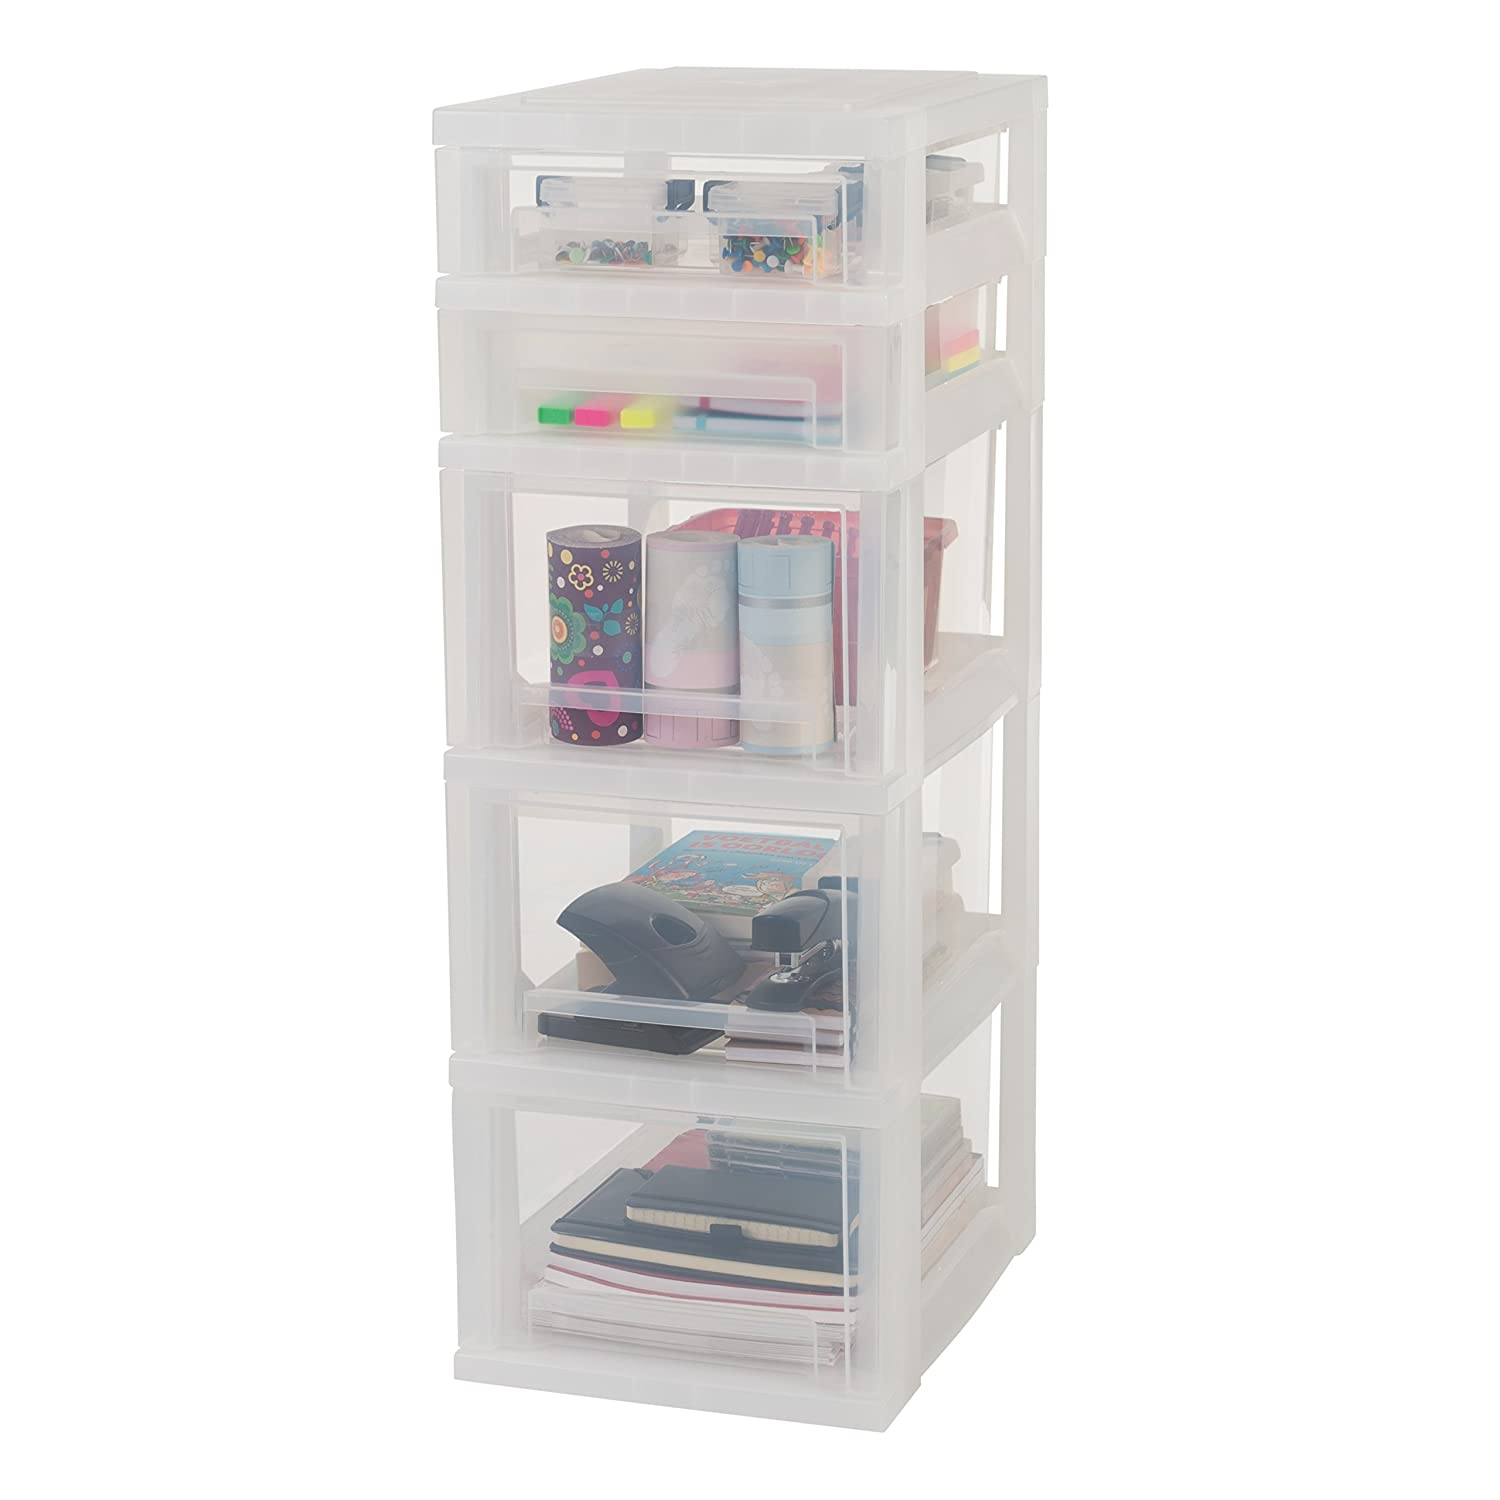 Amazon.com: Iris Ohyama Europe SDC-323 Plastic 5 Storage ...